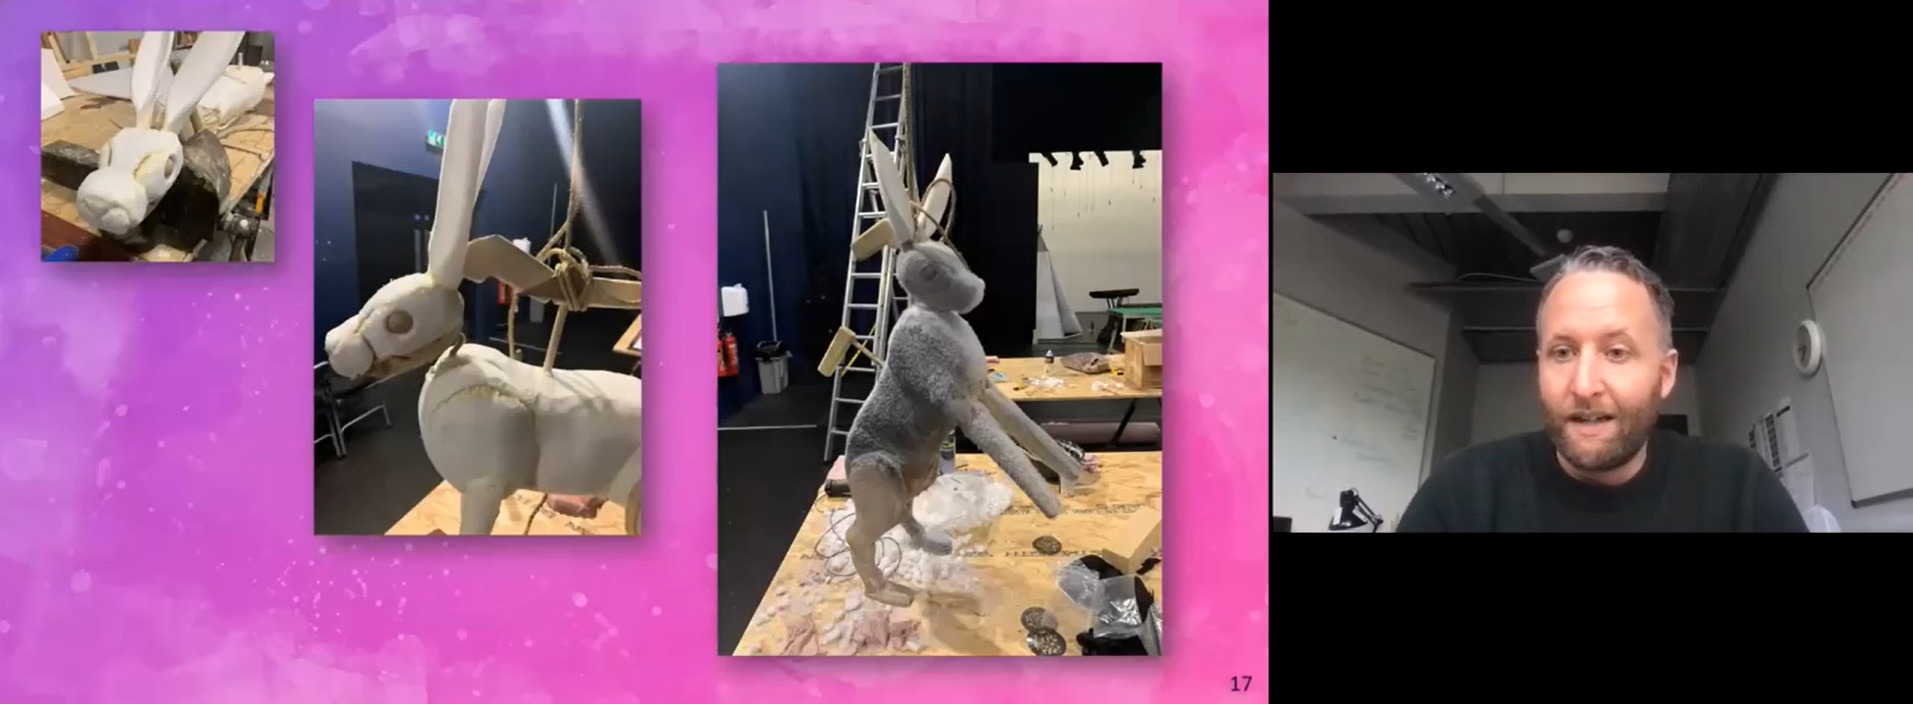 Michael talks through his presentation slide - images of a puppet hare he created for a show, in three different stages of being created.